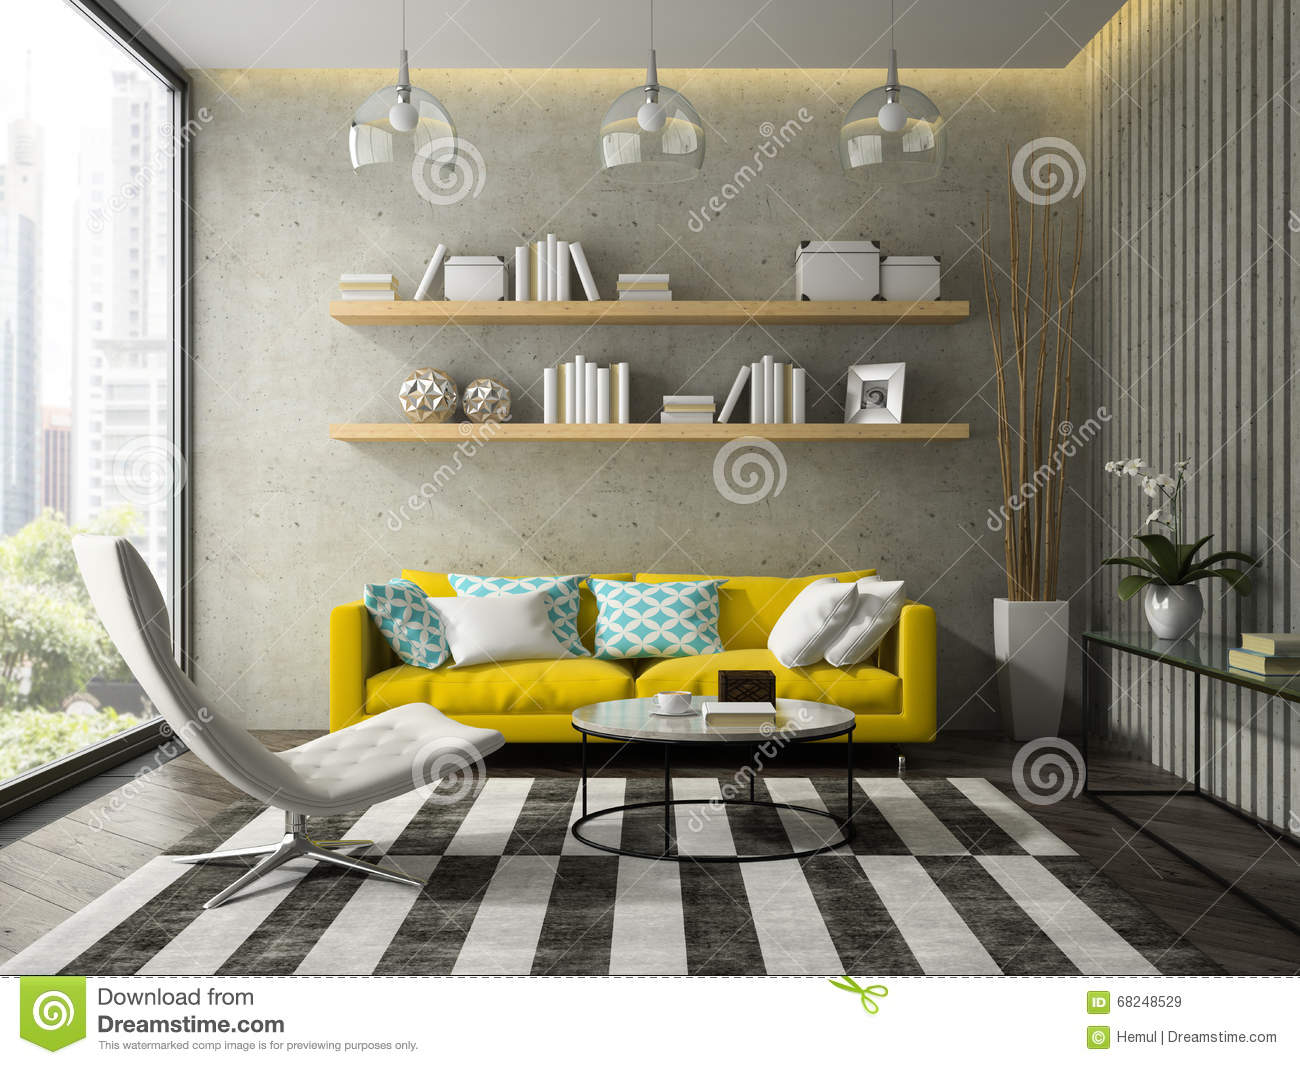 royalty free stock photo - Yellow Couch